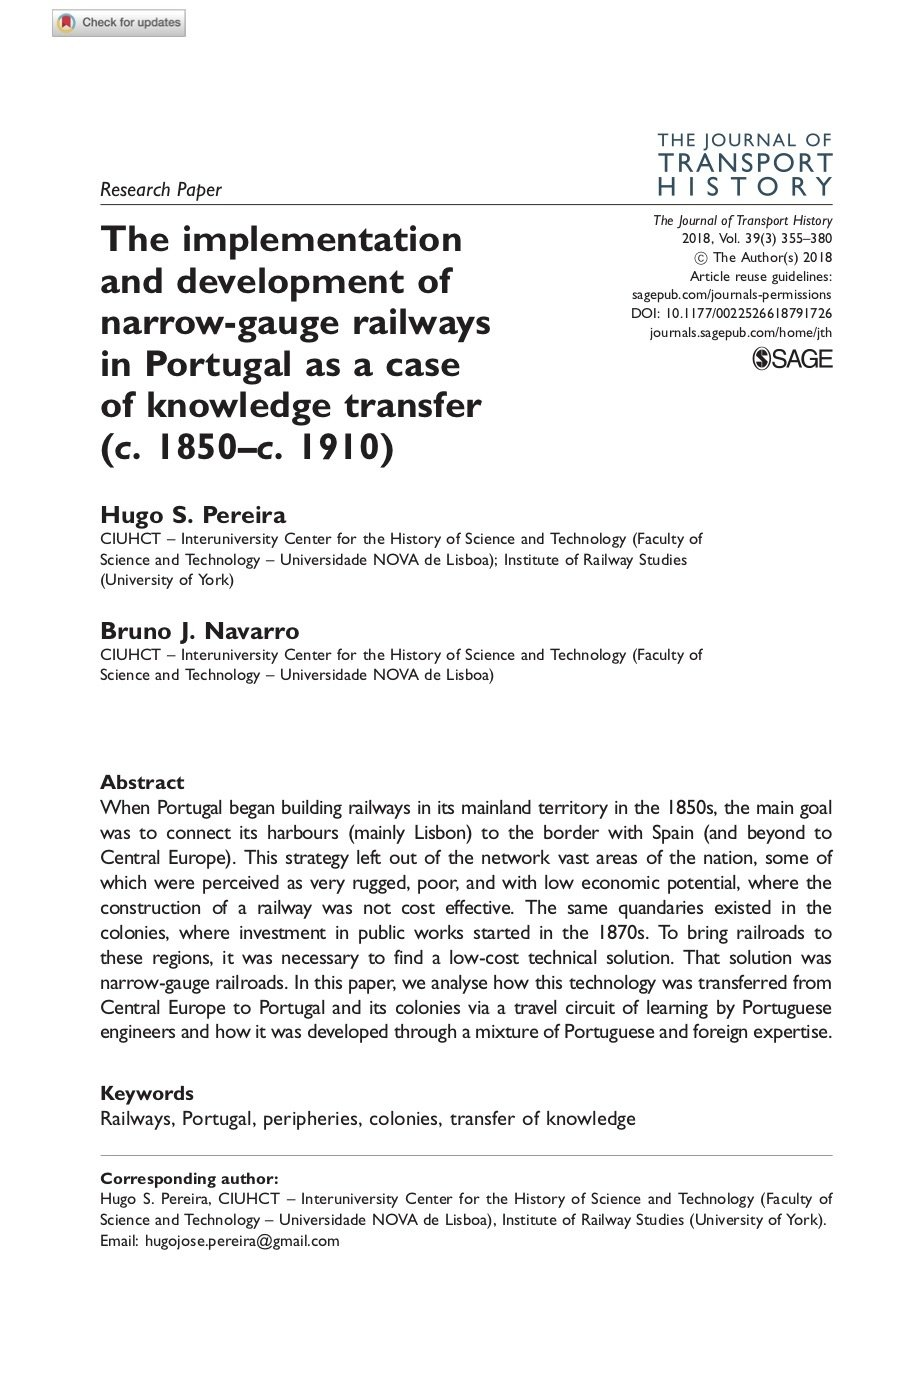 The implementation and development of narrow-gauge railways in Portugal as a case of knowledge transfer (c. 1850–c. 1910), Capa